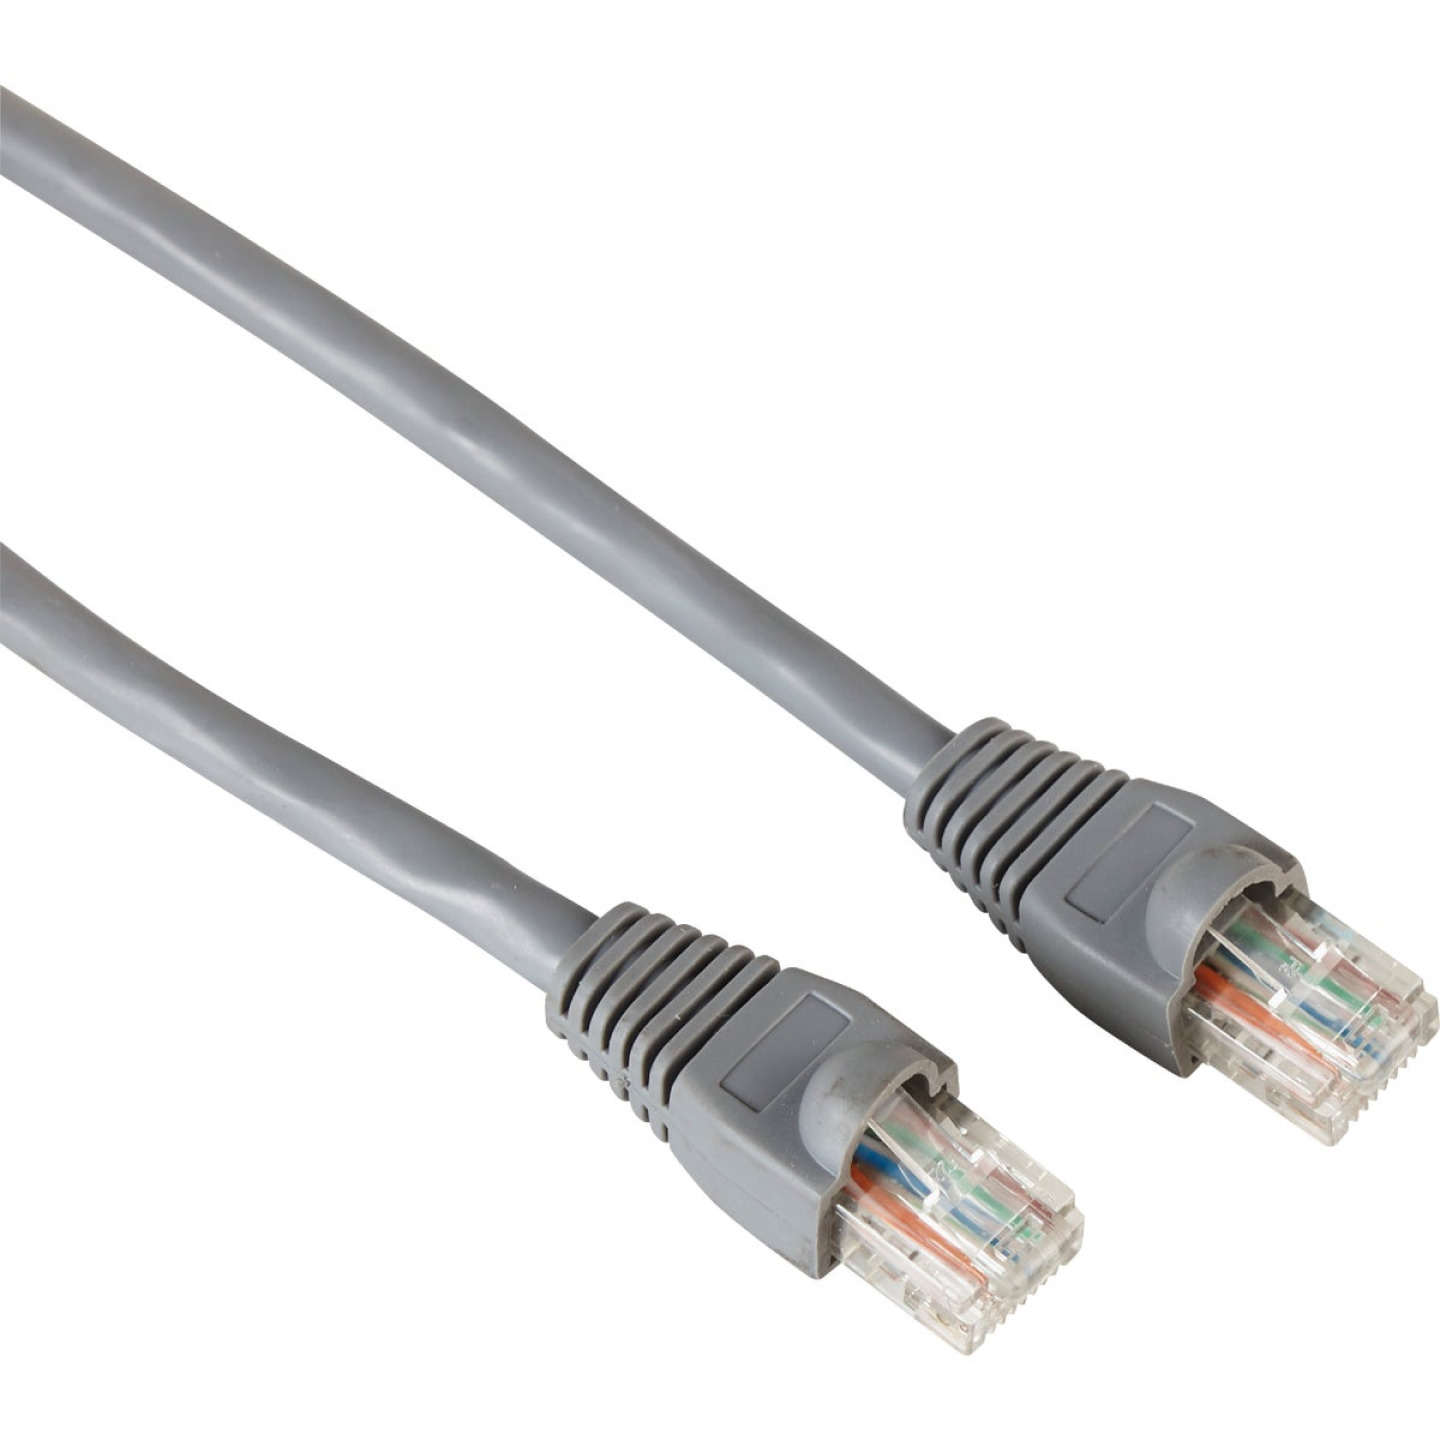 RCA 25 Ft. CAT-6 Gray Network Cable Image 1